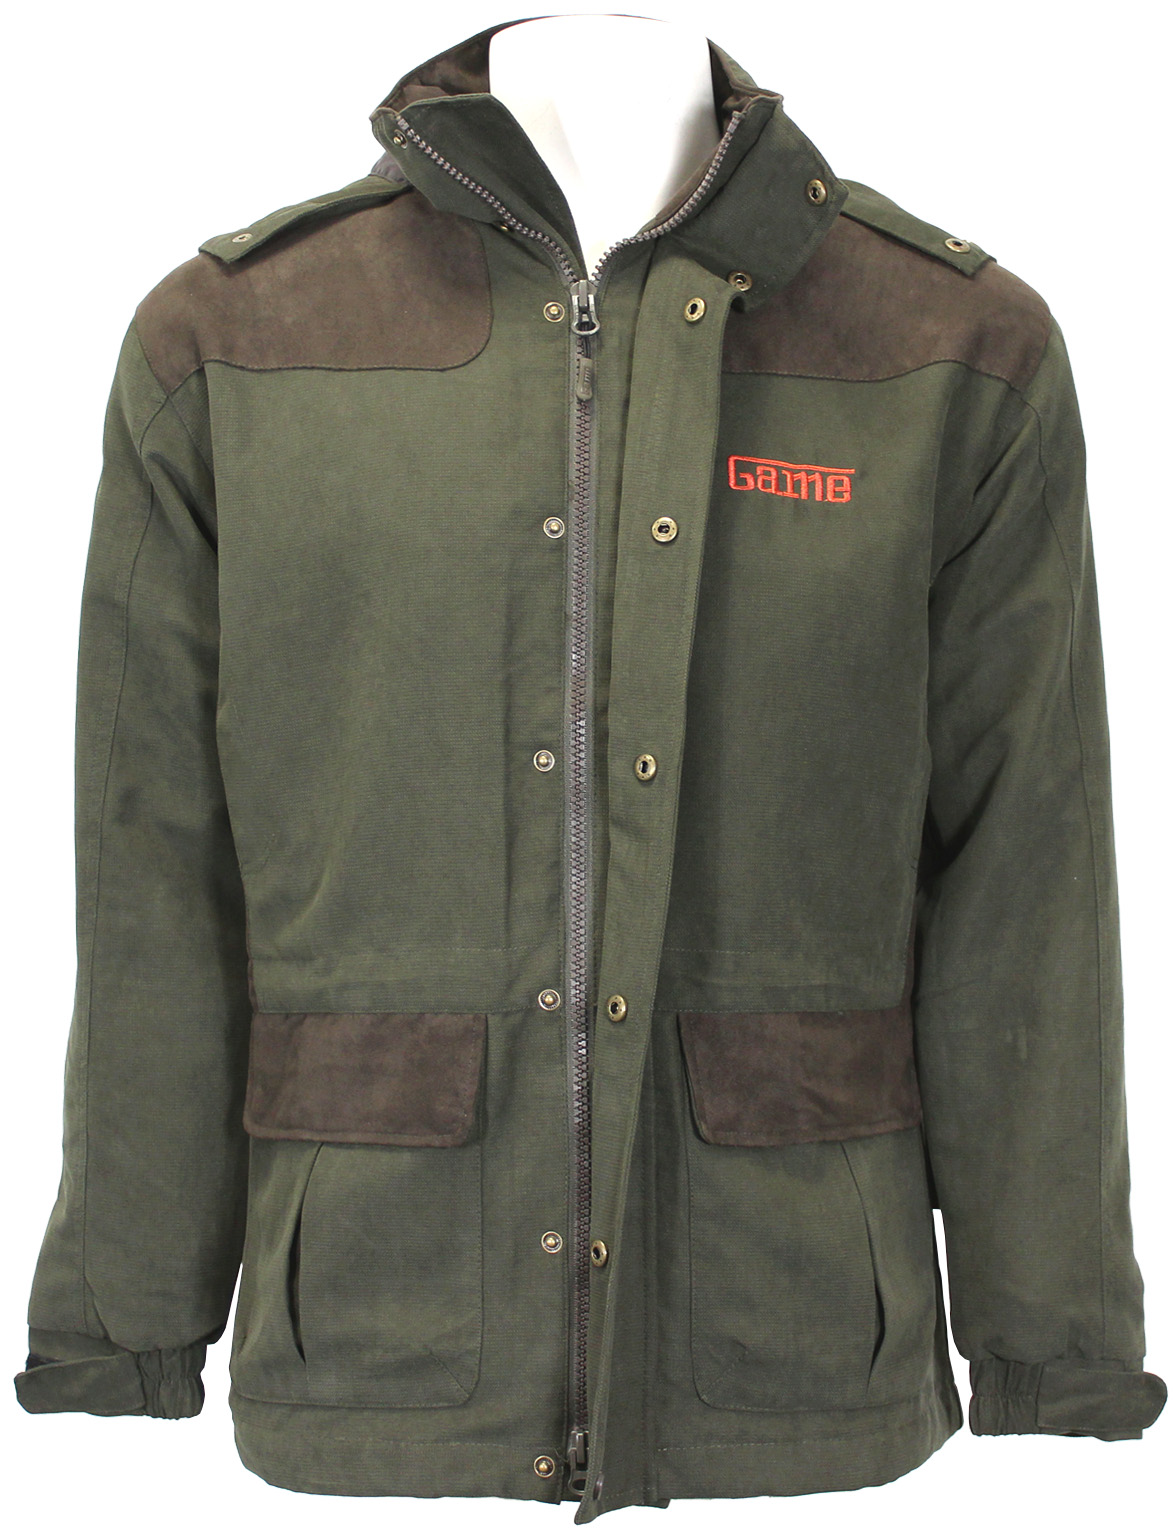 7bccd3a67cef8 Game Aston Pro Mens Jacket Green Waterproof & Breathable | Zikit